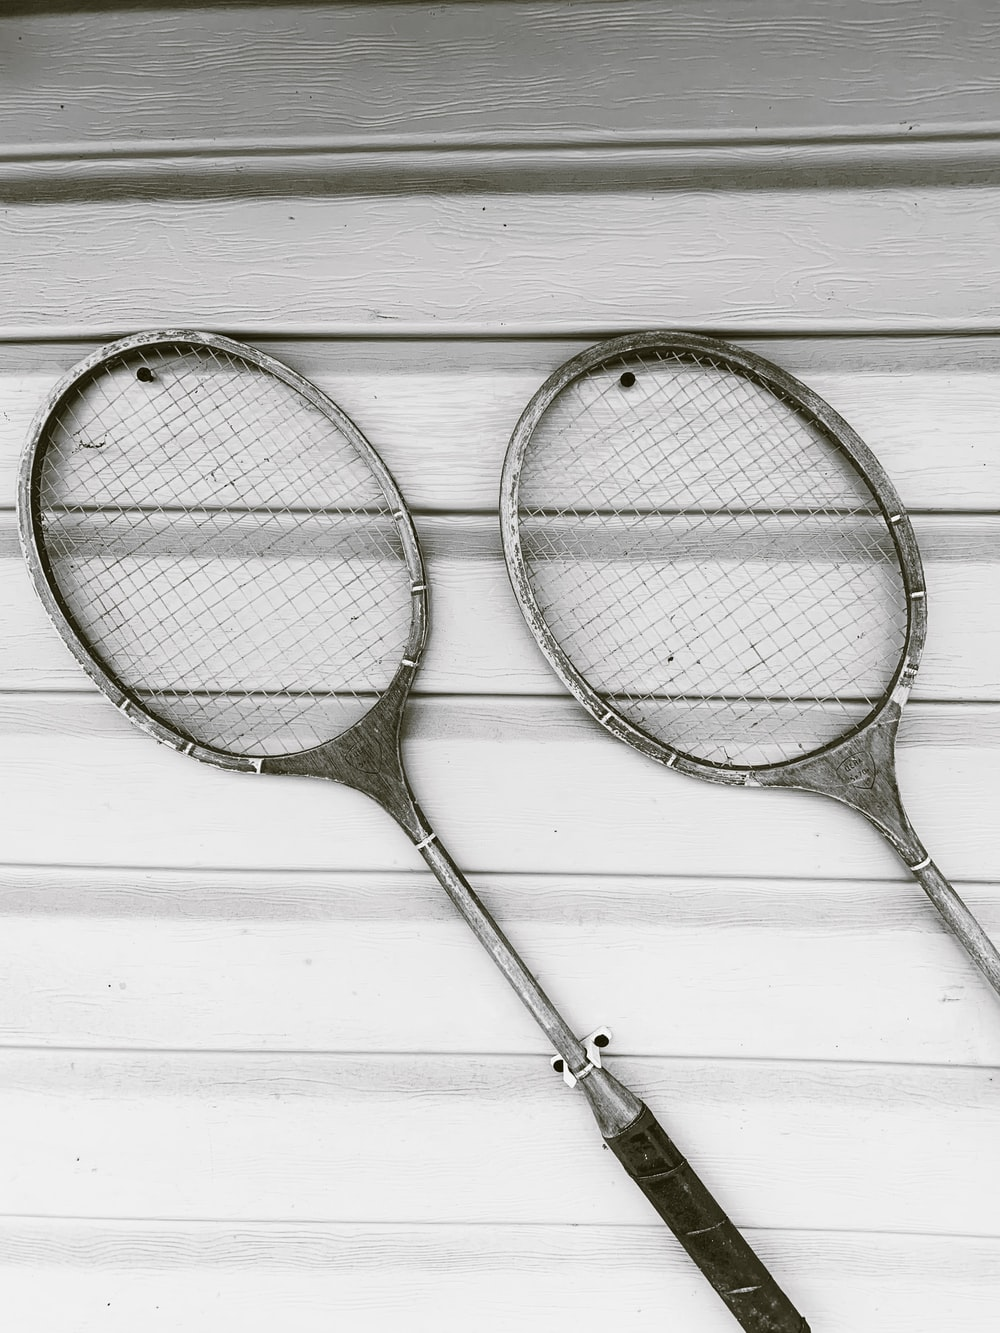 two gray badminton rackets on white wooden surface